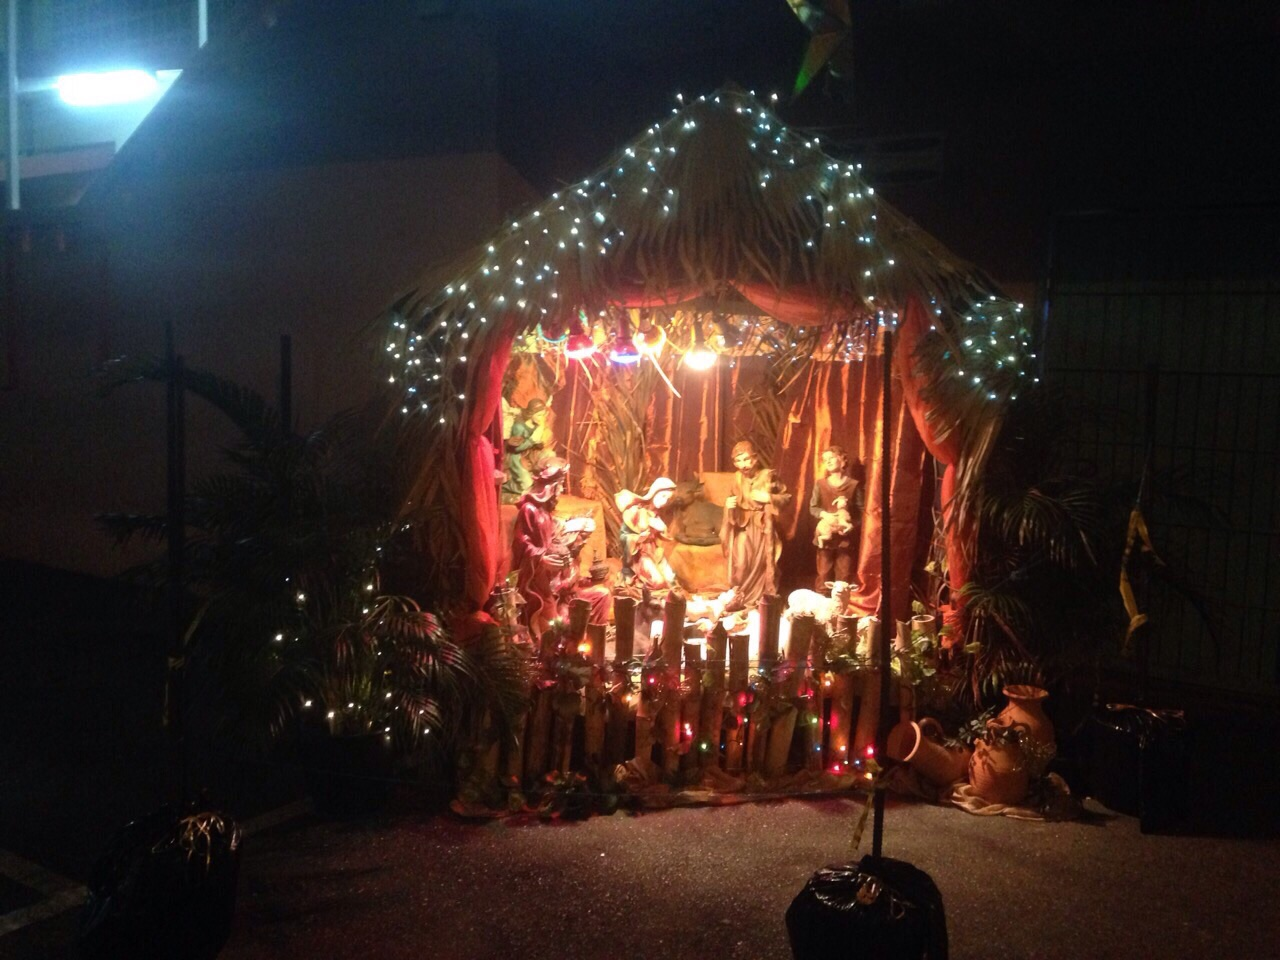 Creche at night 2014